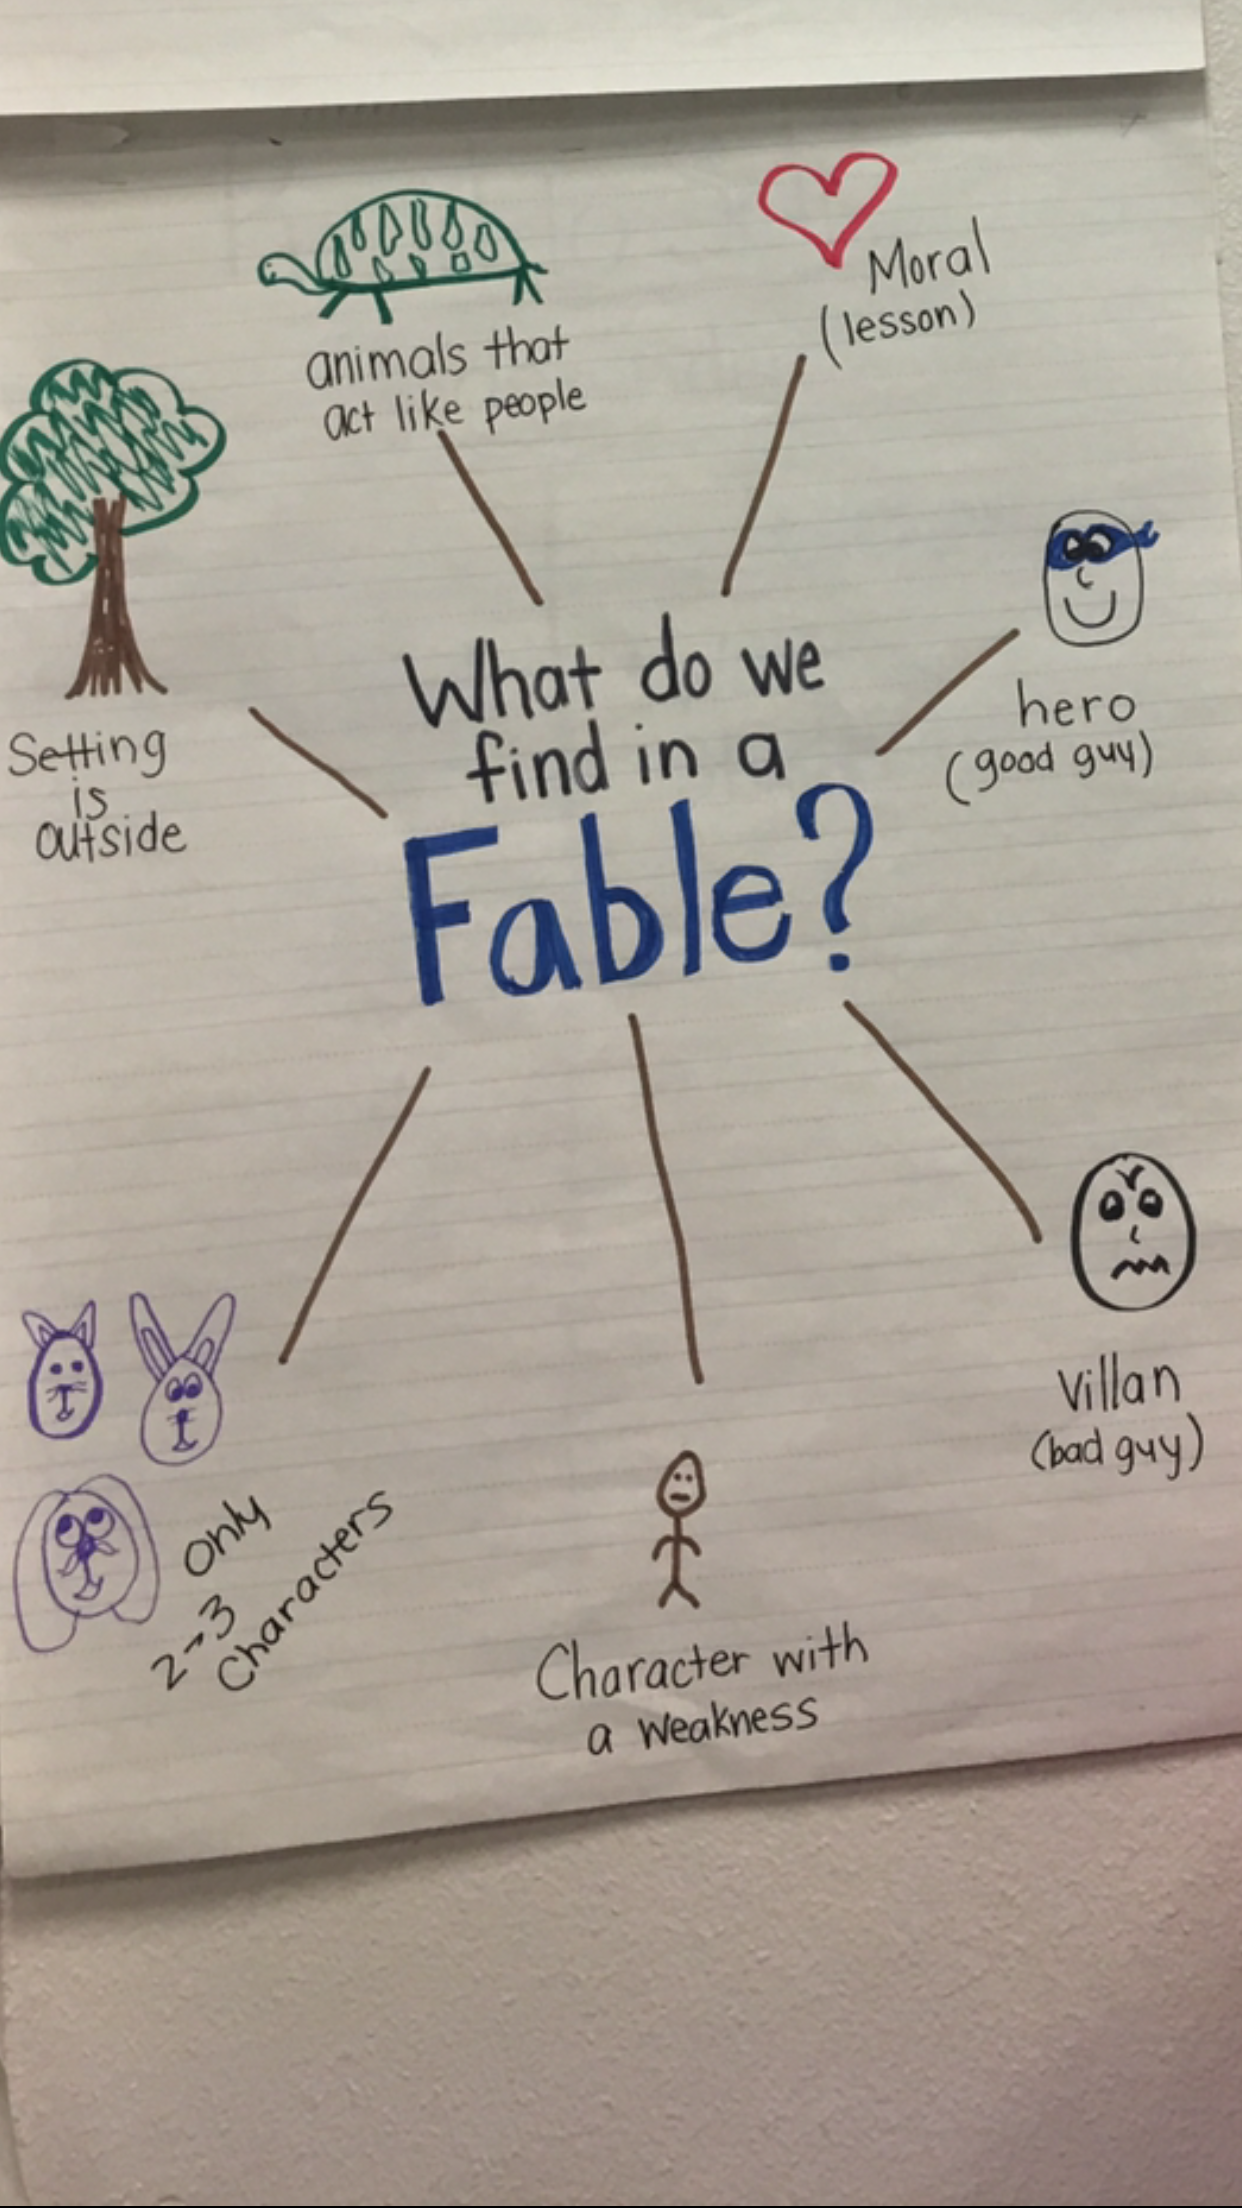 This Is A Anchor Chart About Fables That Is Displayed In A Classroom At Krum Elementary School